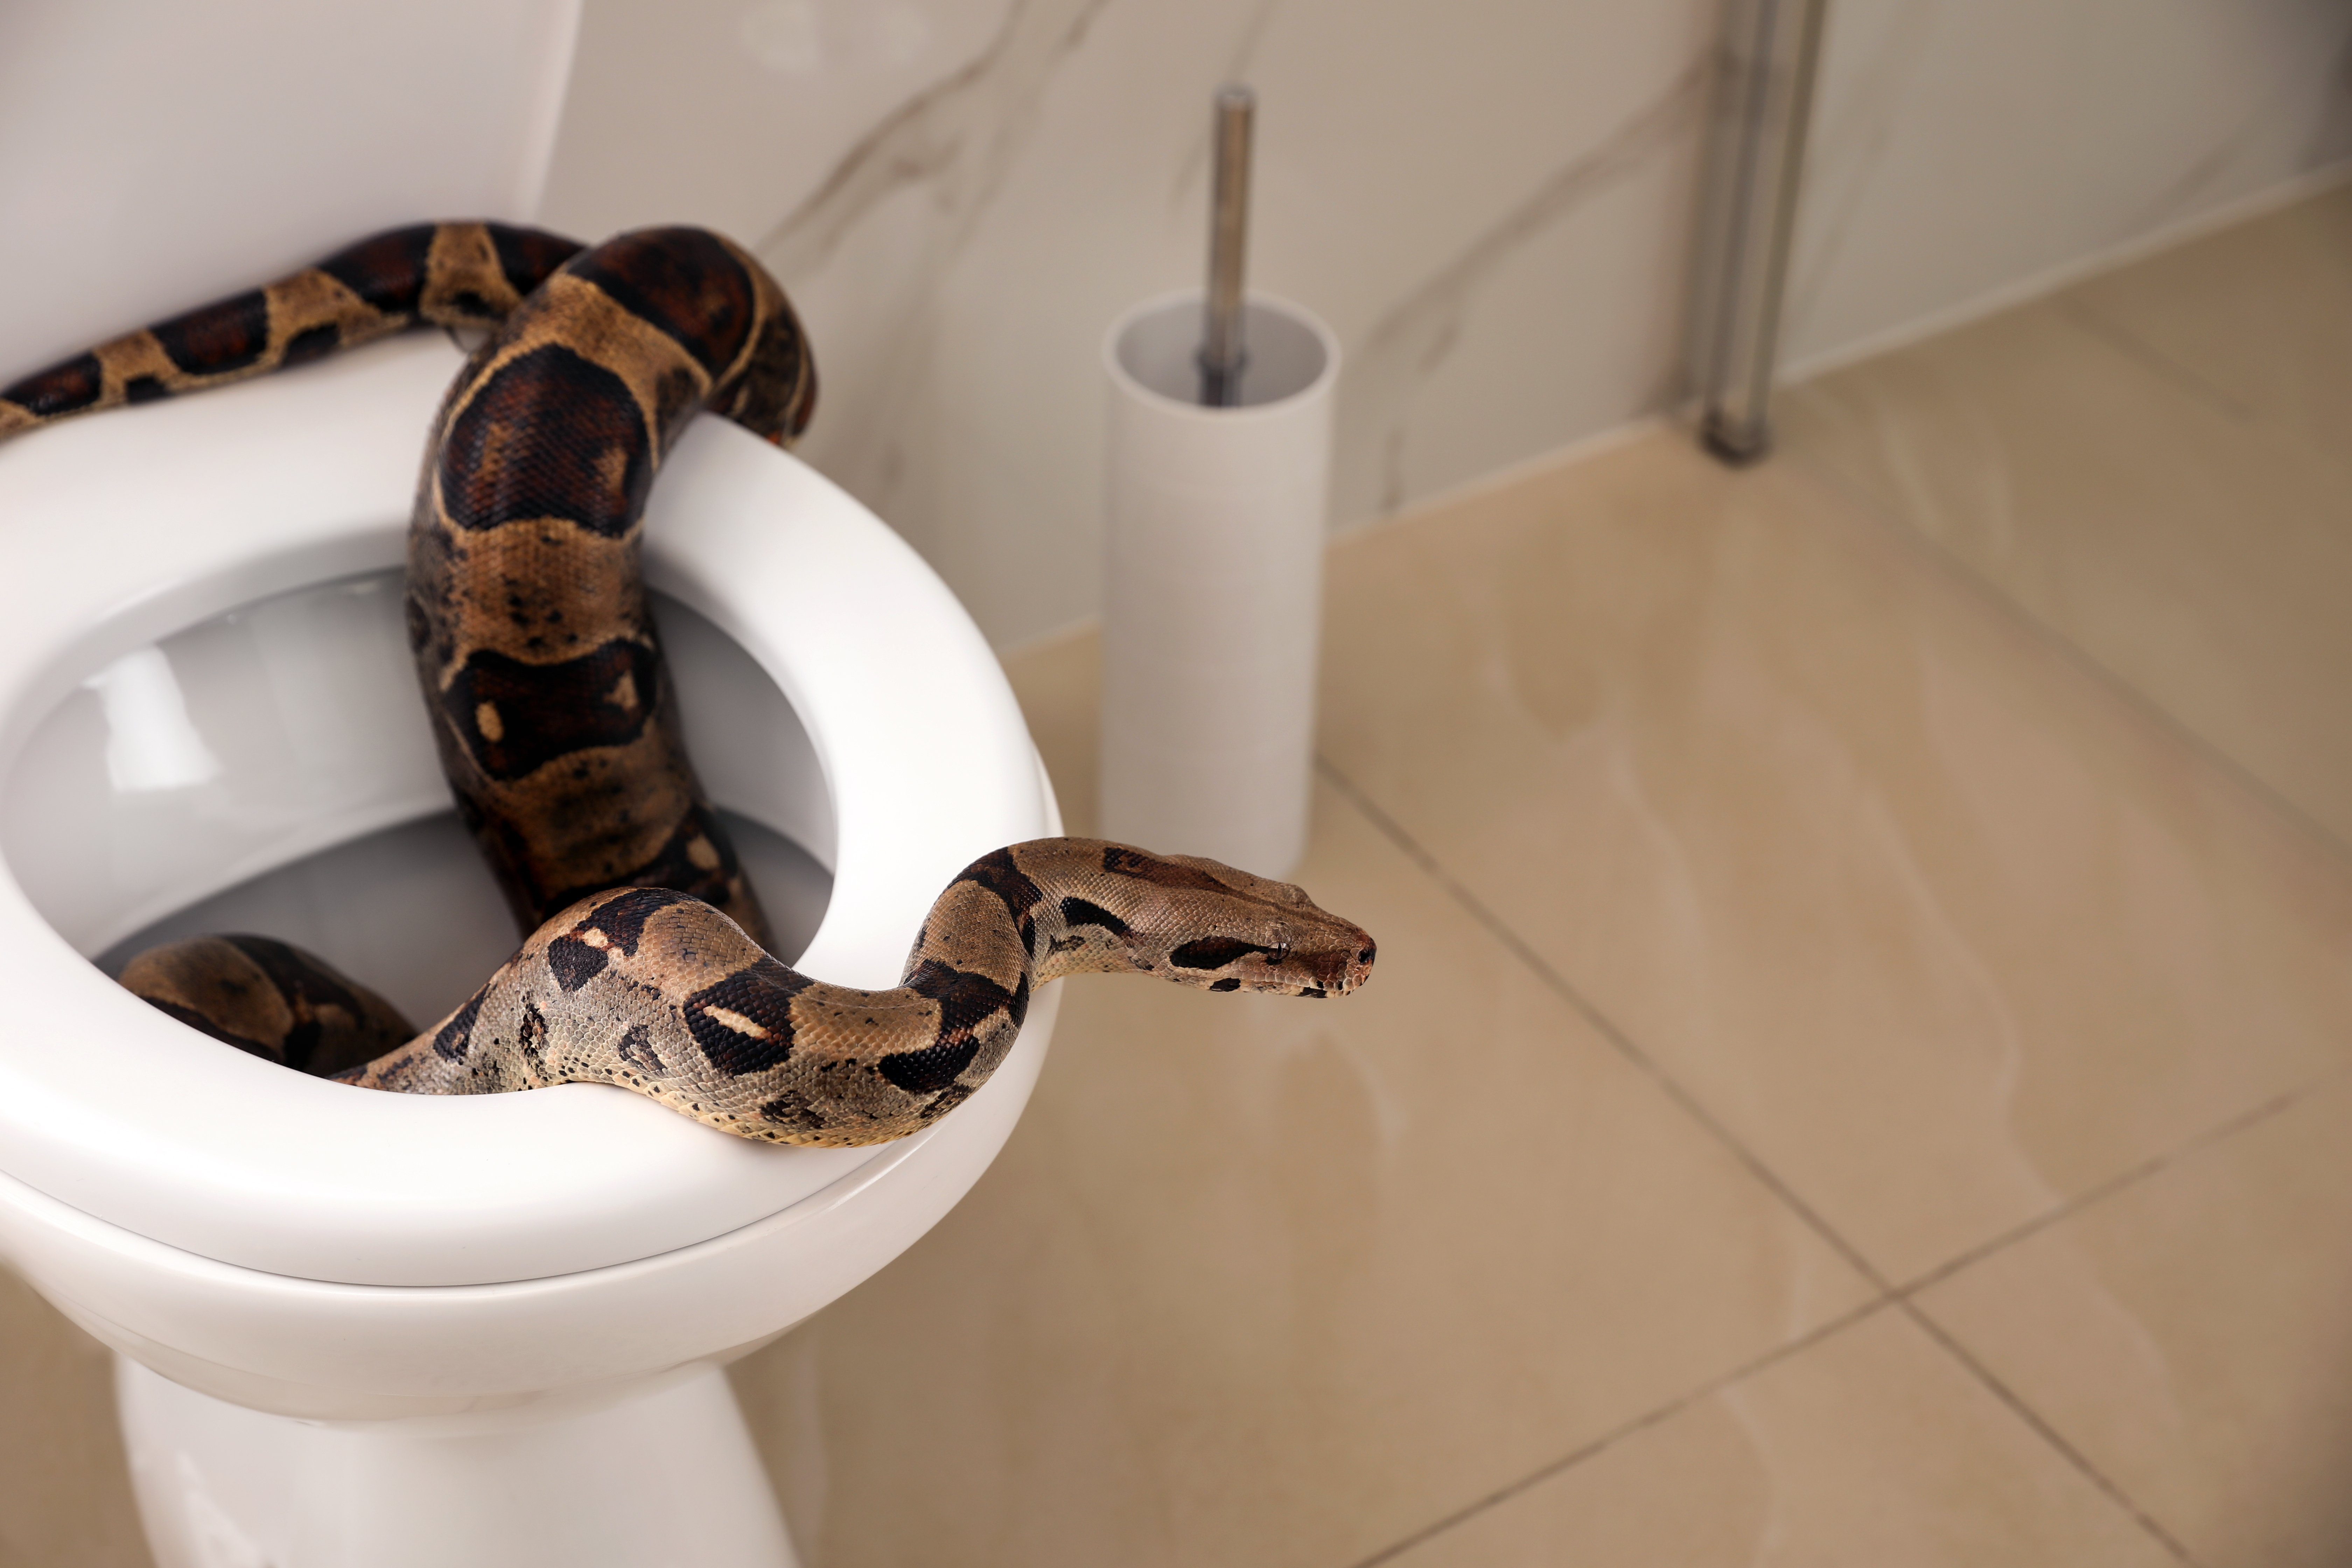 Brown boa constrictor on toilet bowl in bathroom   Photo: Shutterstock/New Africa